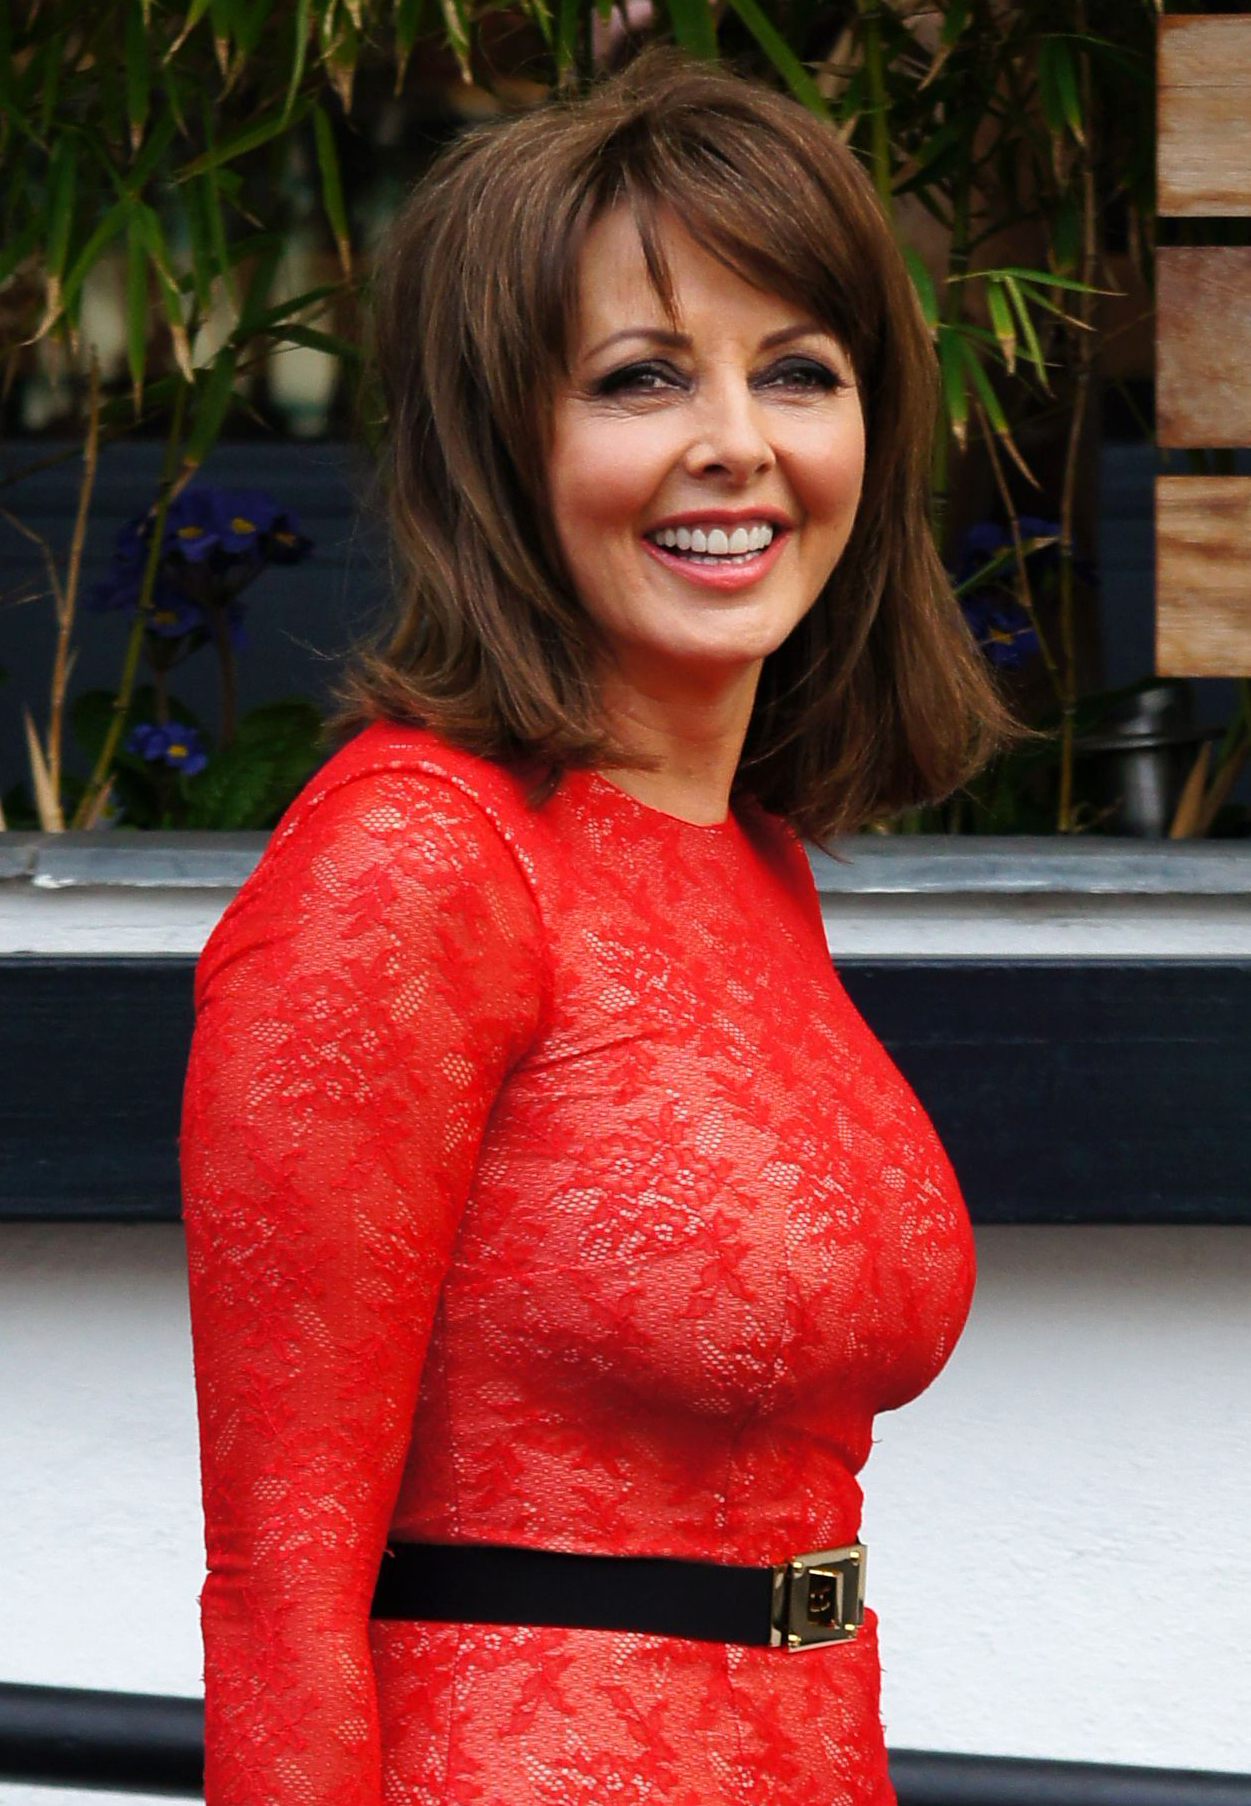 XXX Carol Vorderman naked (68 foto and video), Sexy, Cleavage, Instagram, in bikini 2018